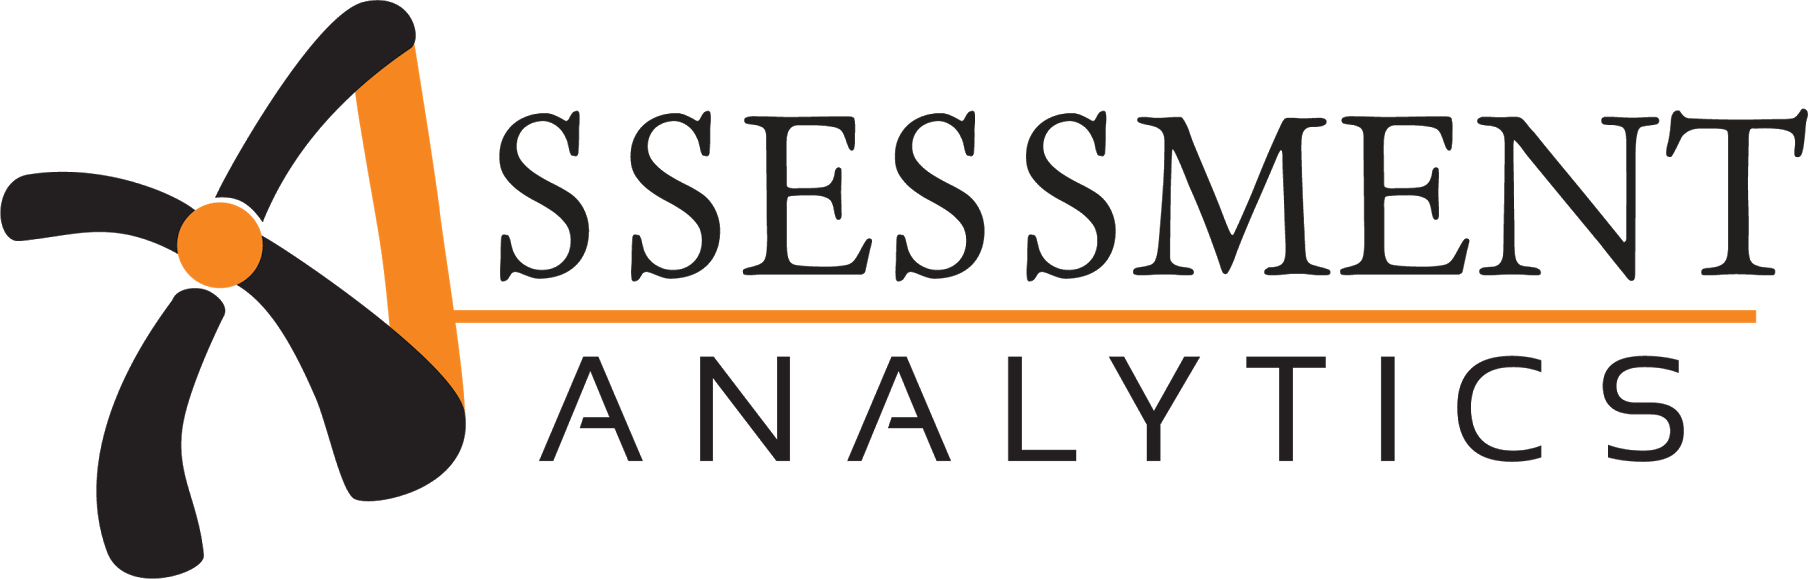 ASSESSMENT ANALYTICS, INC.